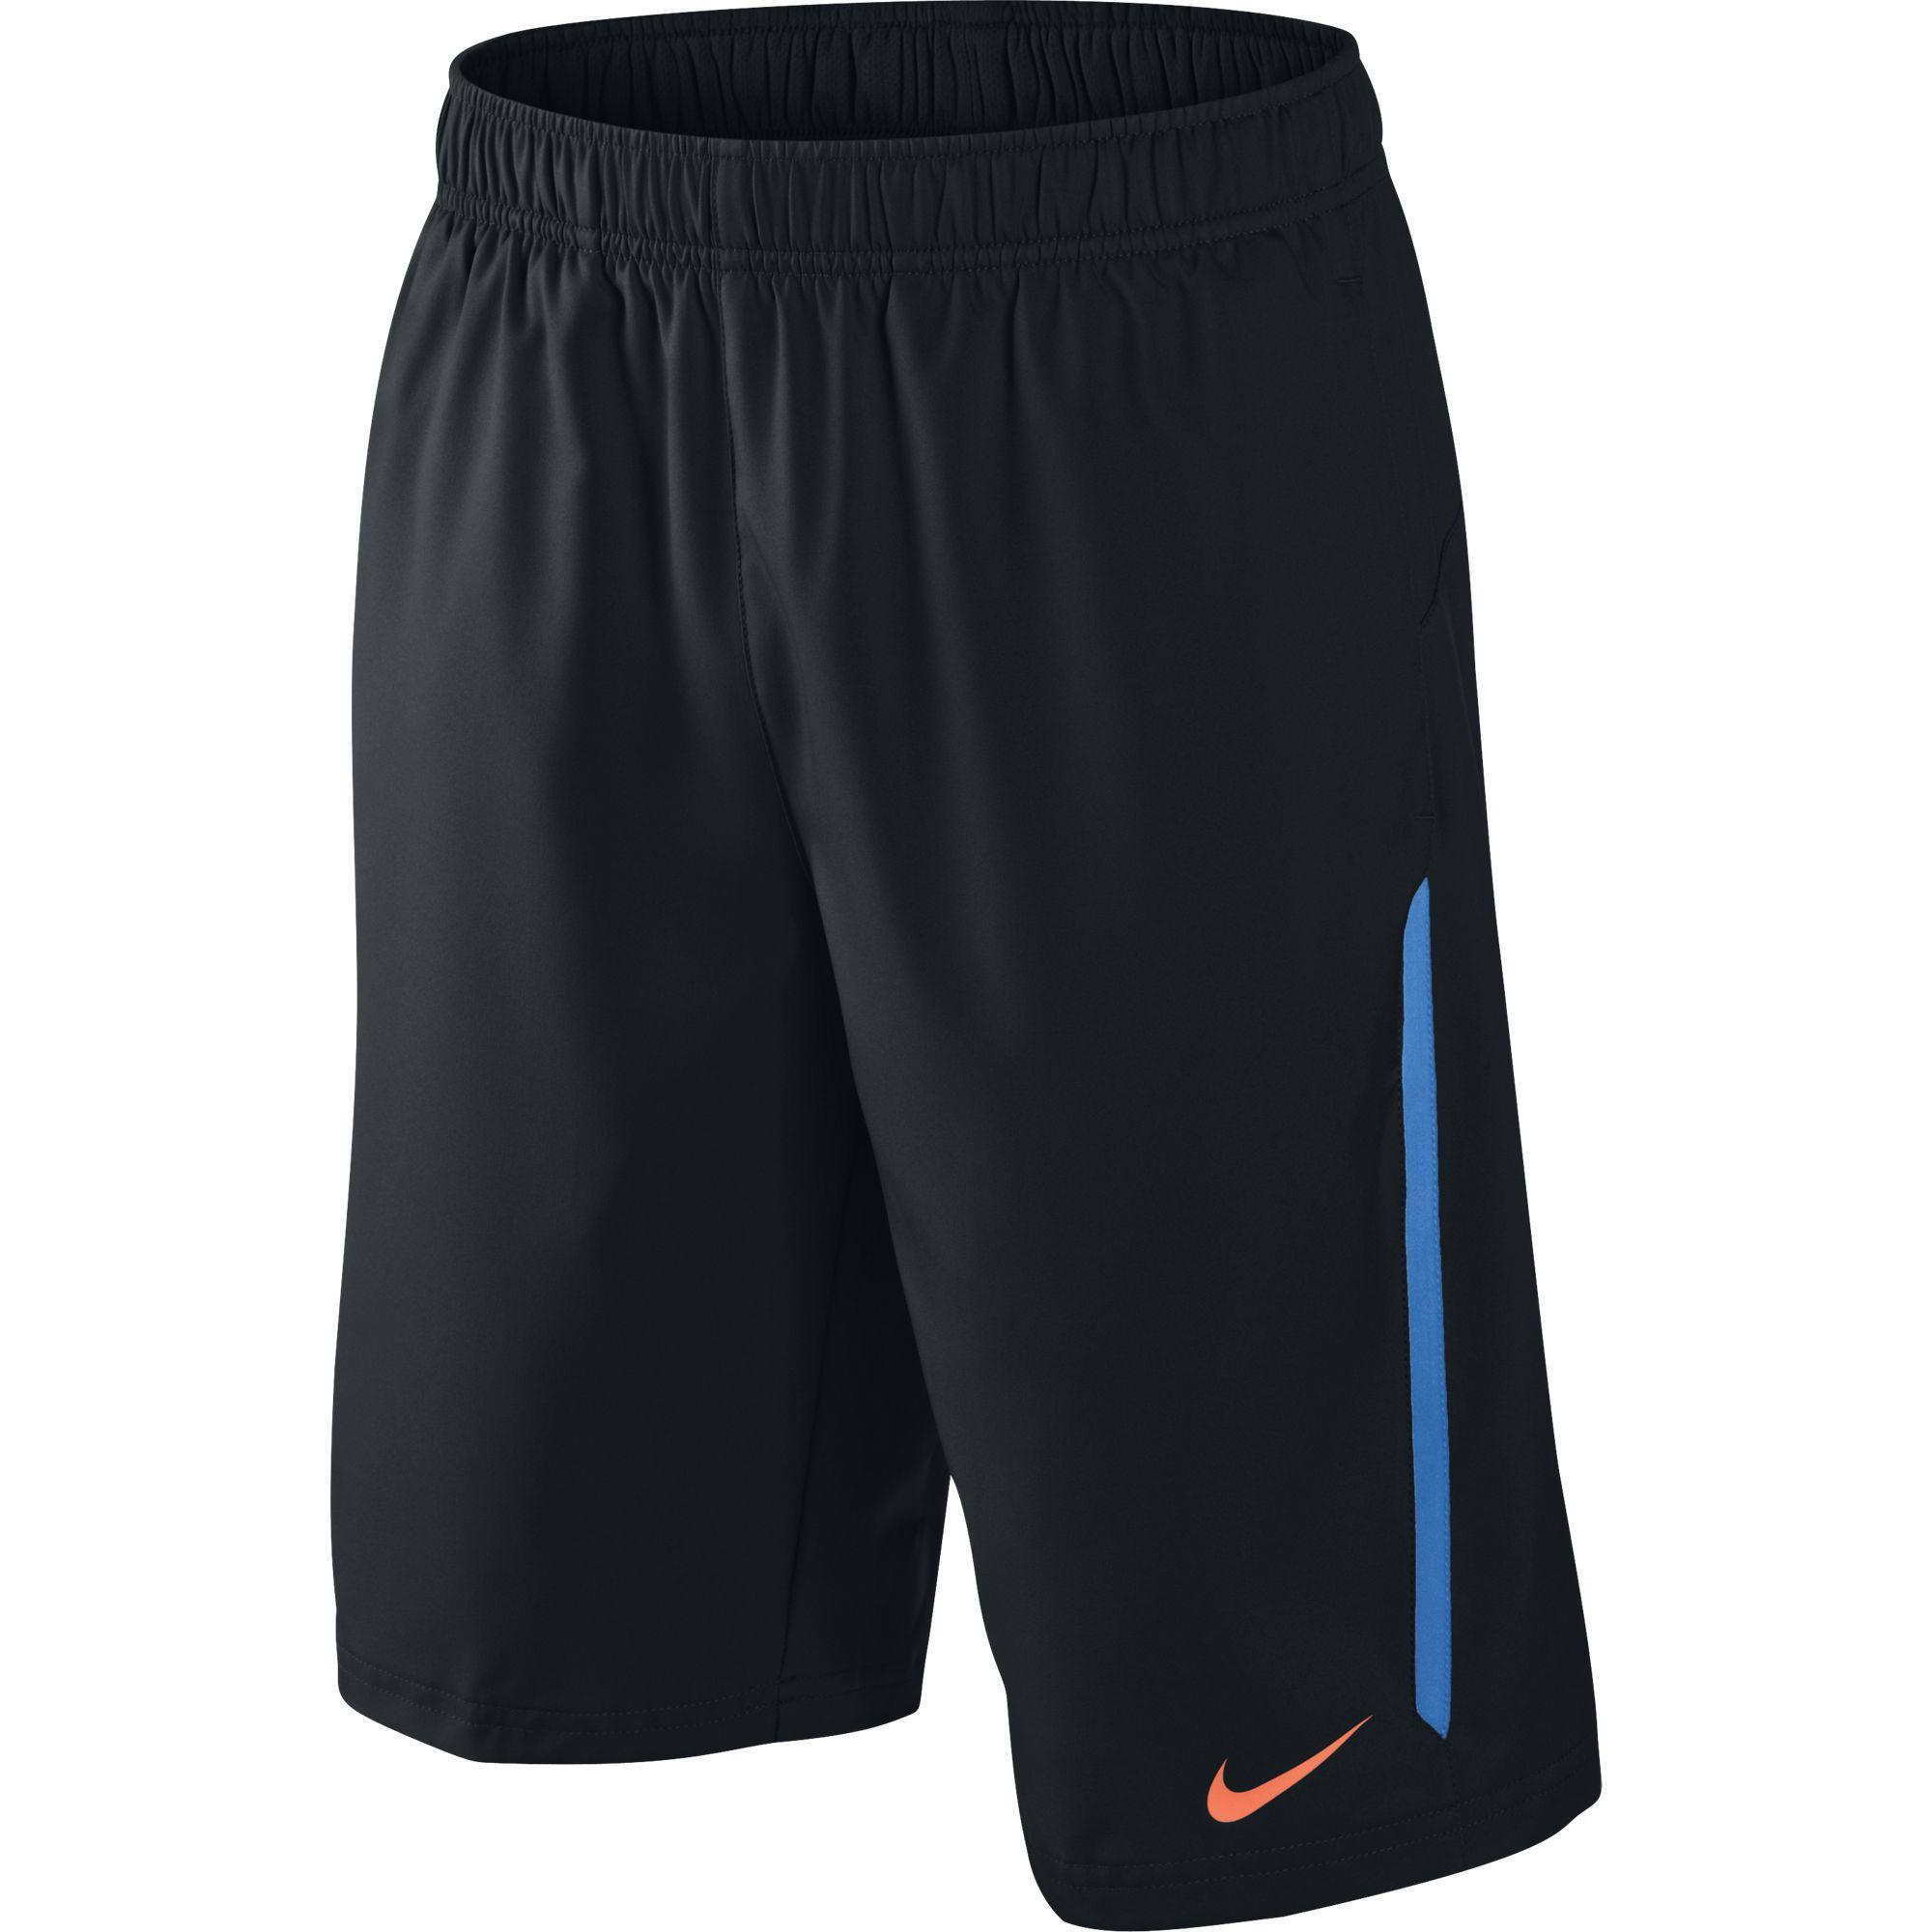 Nike Boys N.E.T Shorts - Black/Blue - Tennisnuts.com